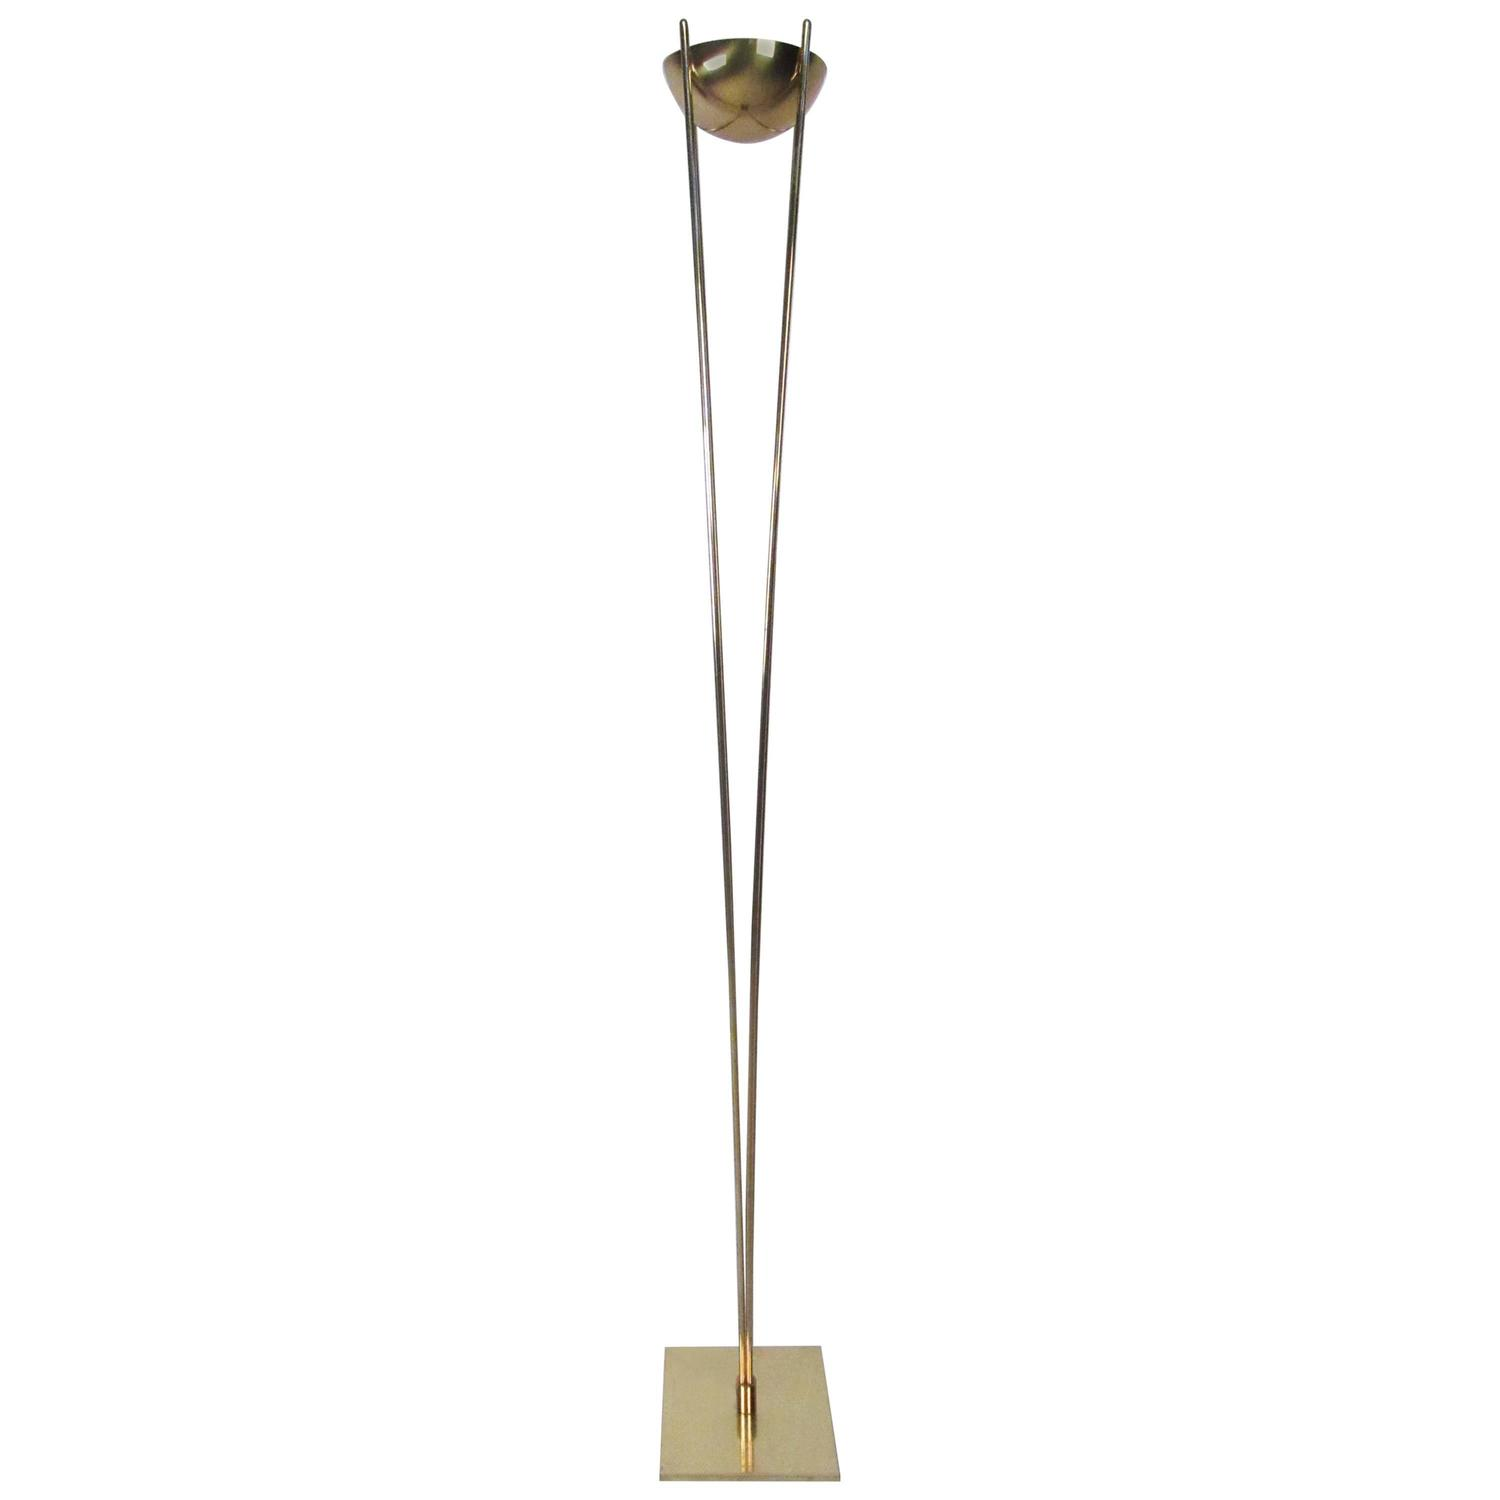 Mid century modern brass torchiere lamp for sale at 1stdibs for Torchiere floor lamp 500w